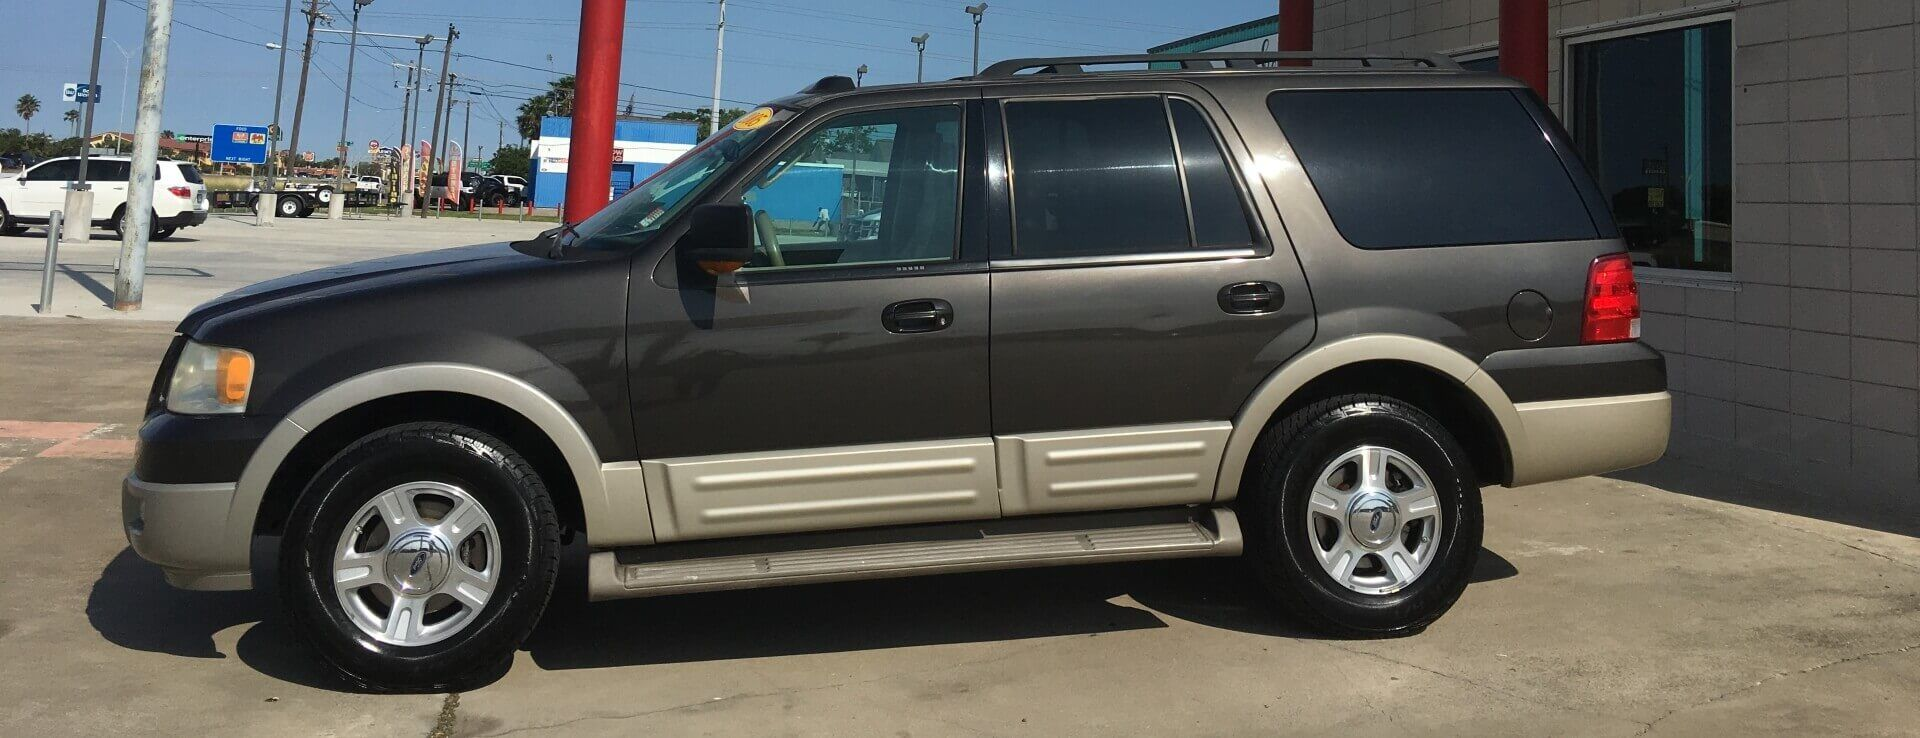 Used_Car_Dealership Buy_Here_Pay_Here_Cars Car